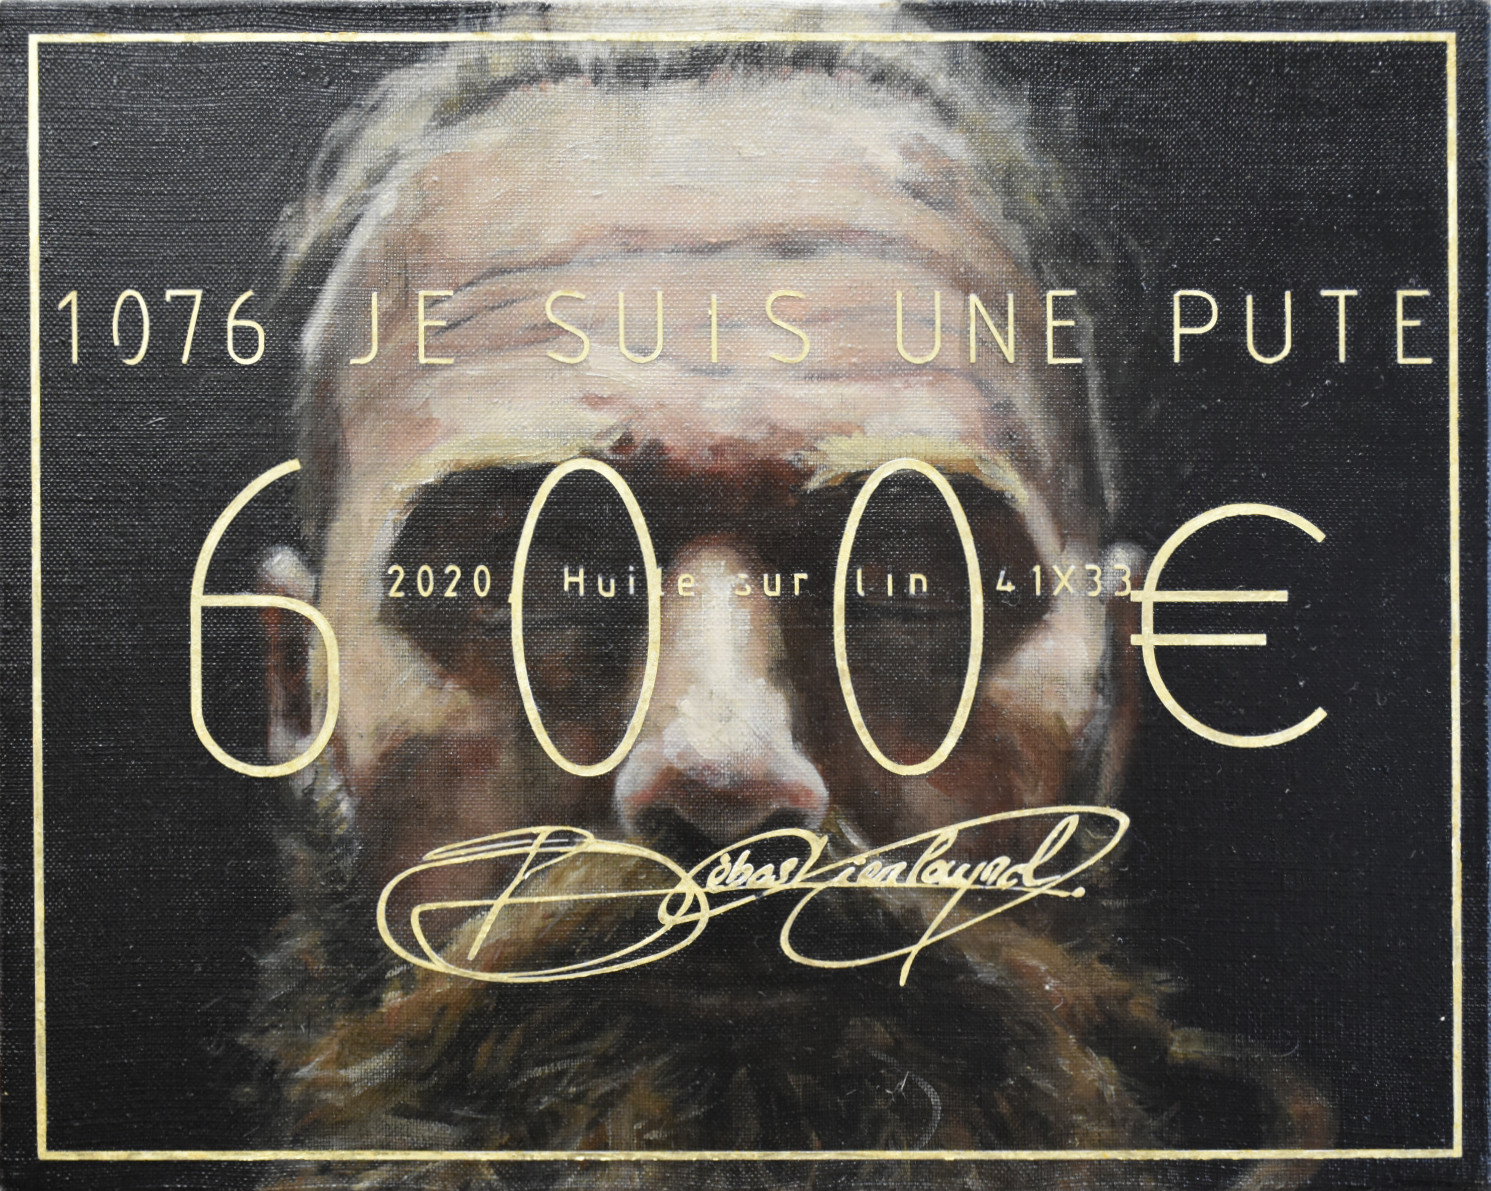 1076 JE SUIS UNE PUTE 2021, Huile & Or s